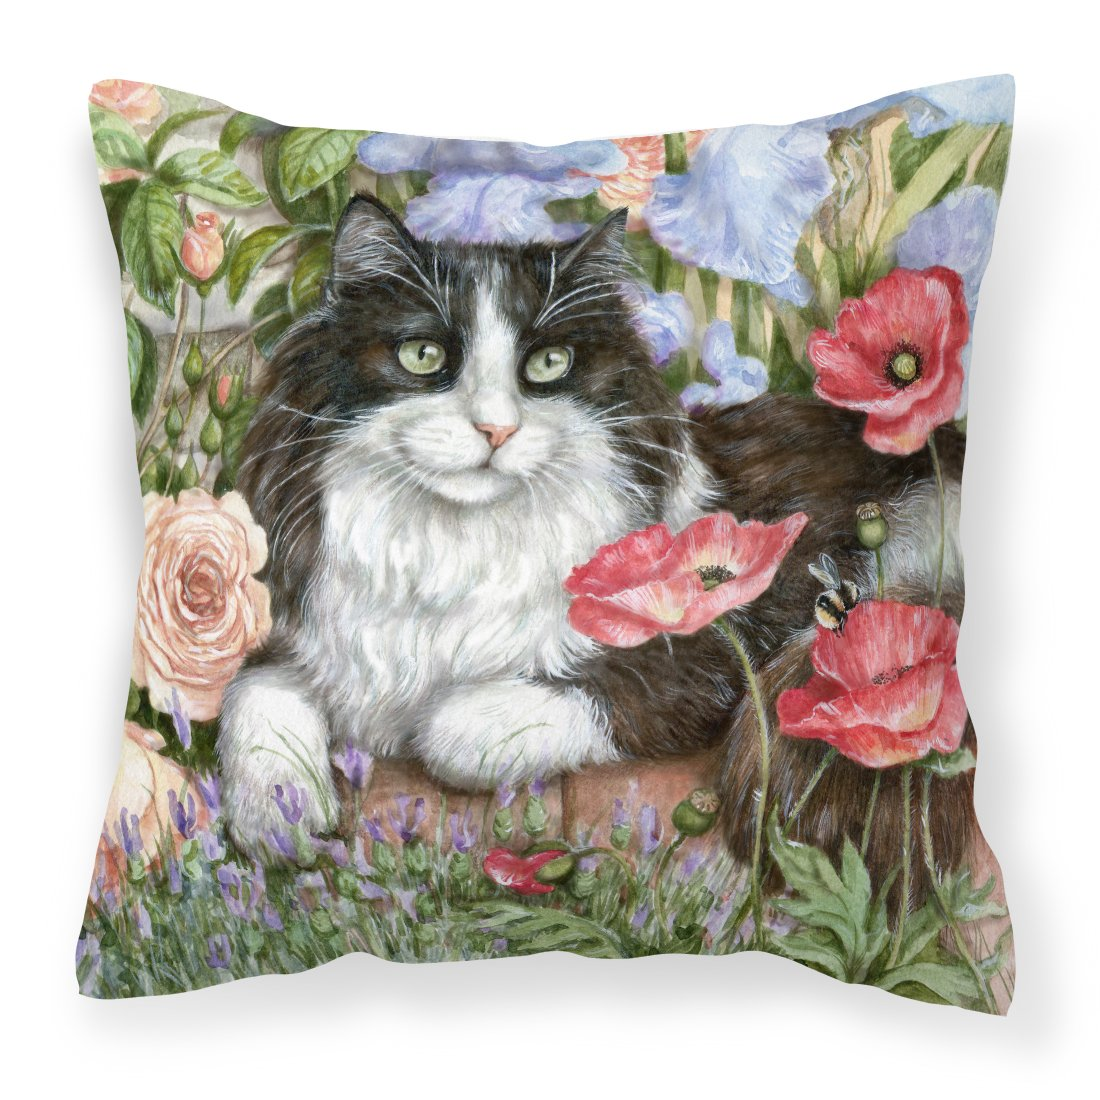 Buy this Black and White Cat in Poppies Canvas Decorative Pillow